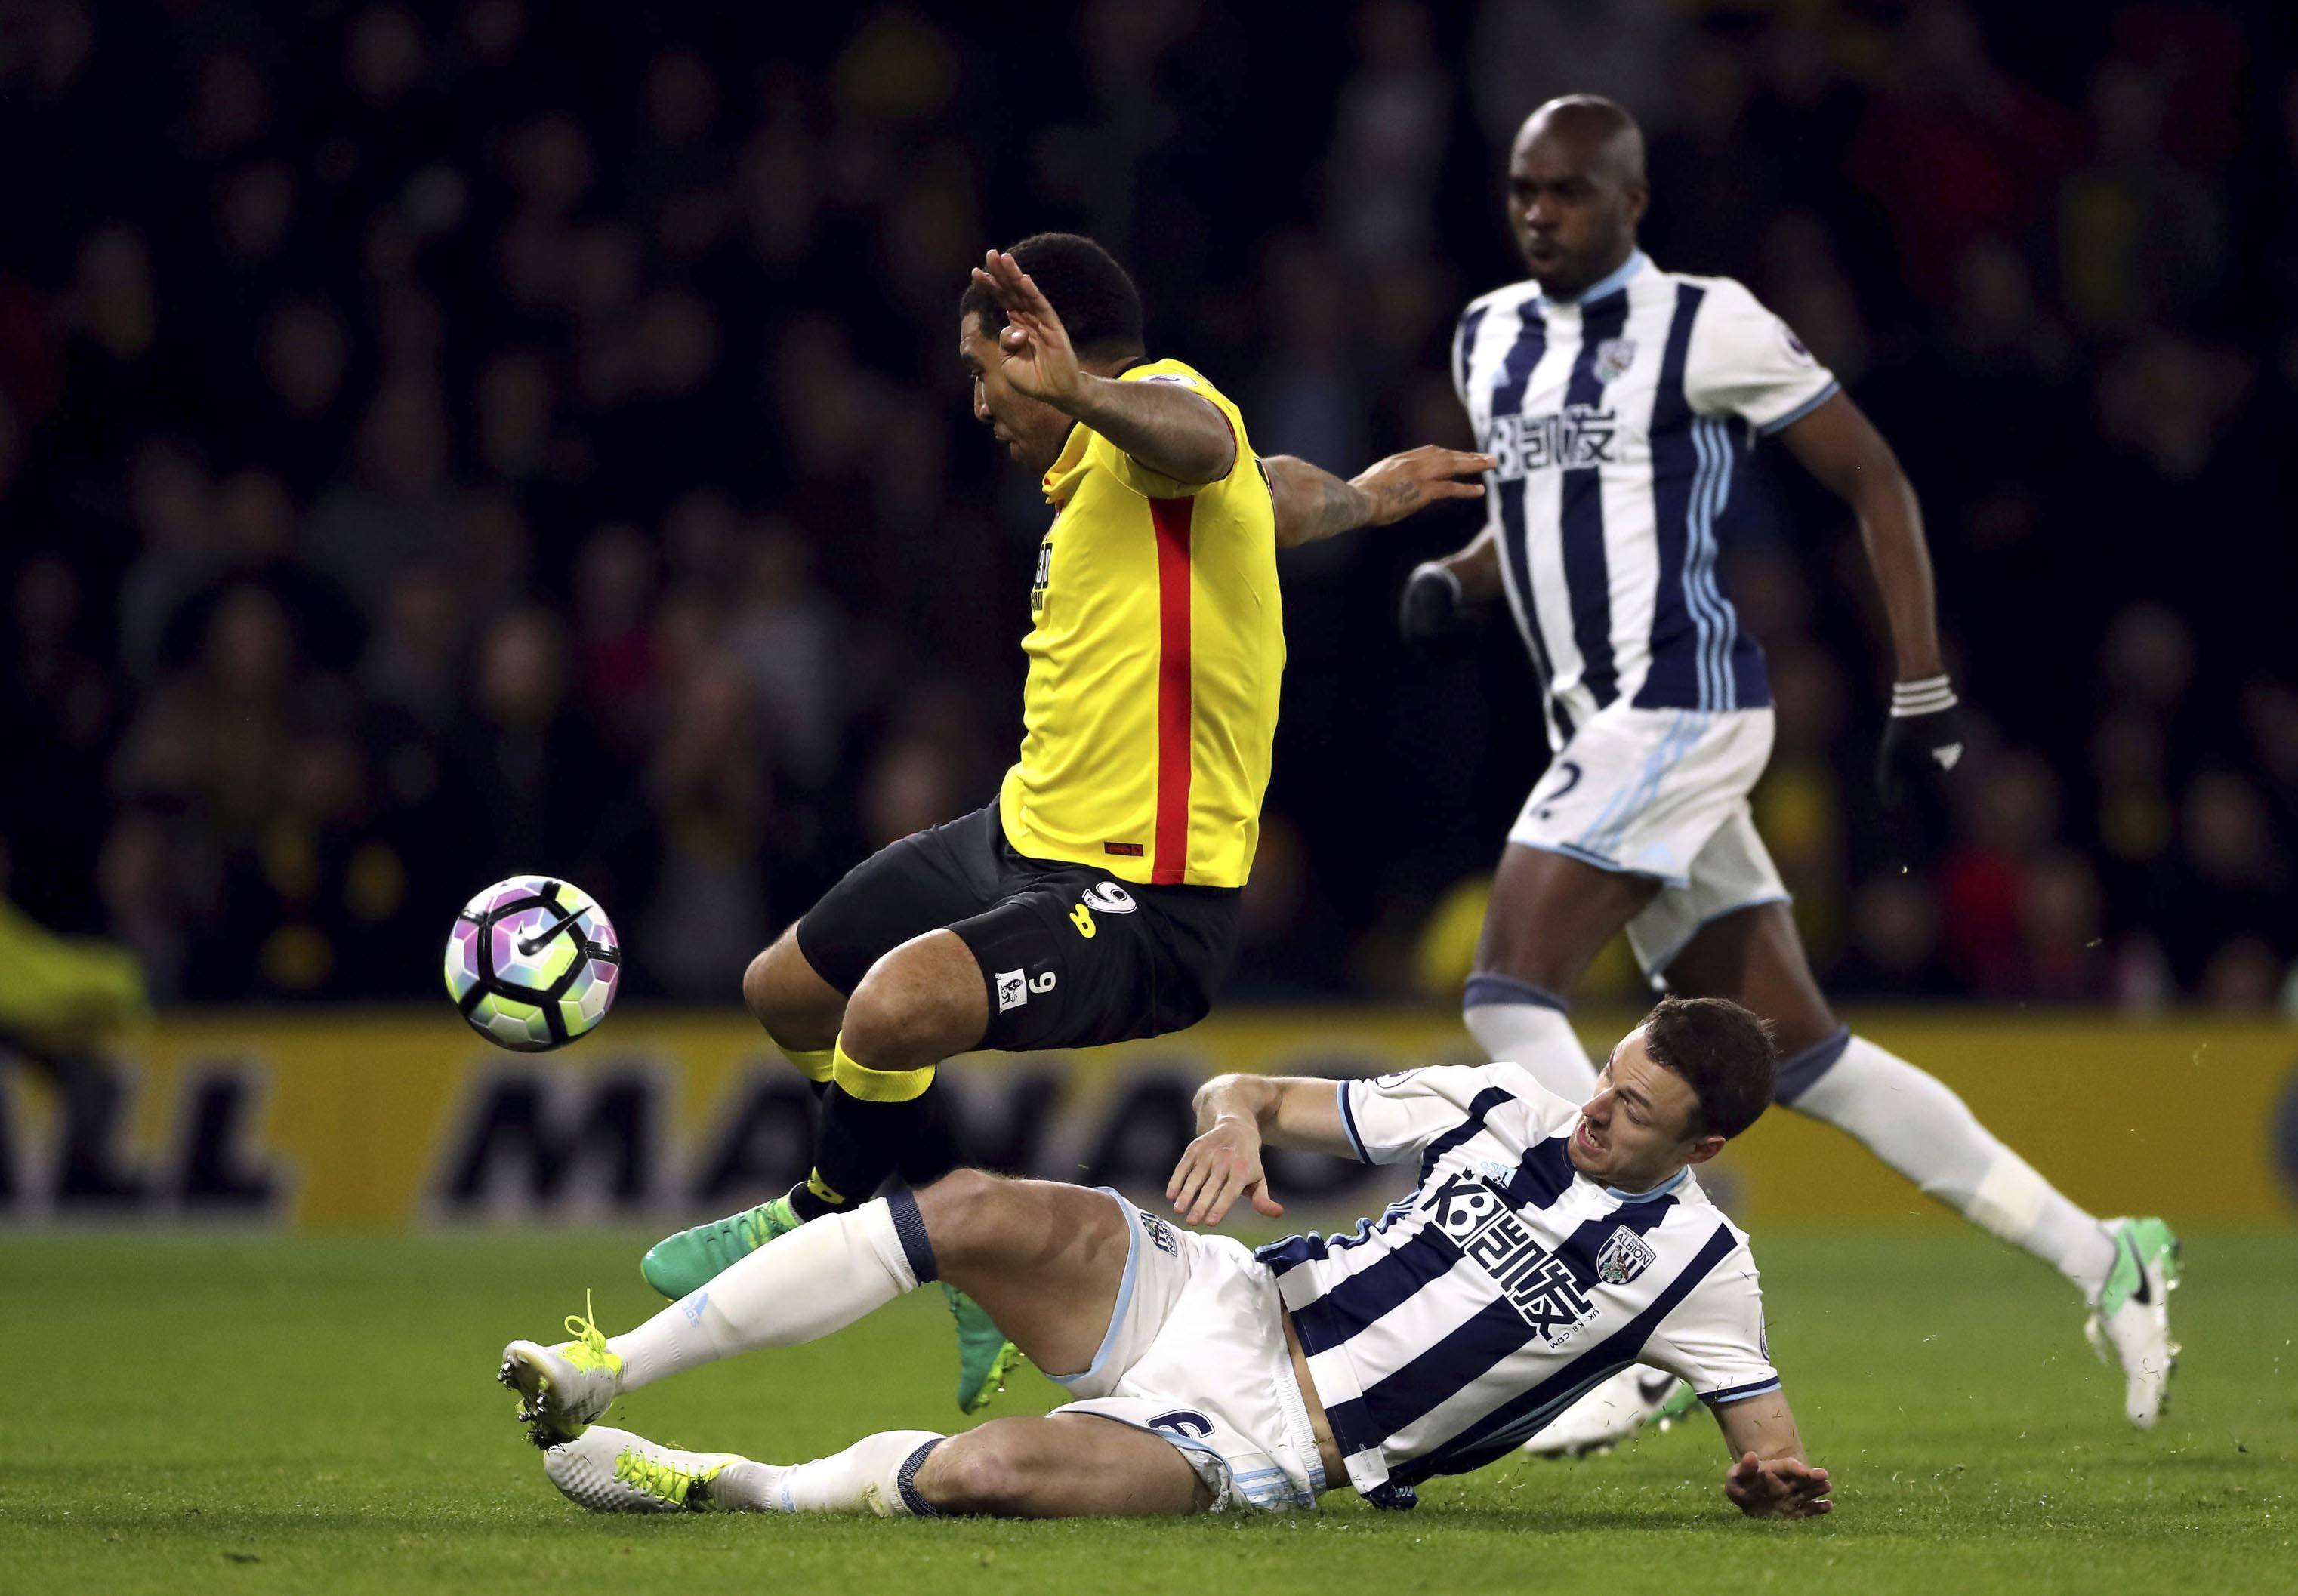 Watford's Troy Deeney, top, scores his side's second goal of the game against West Bromwich Albion during the English Premier League soccer match between Watford and West Brom at the Vicarage Road in Watford, England, on Tuesday April 4, 2017. Photo: AP